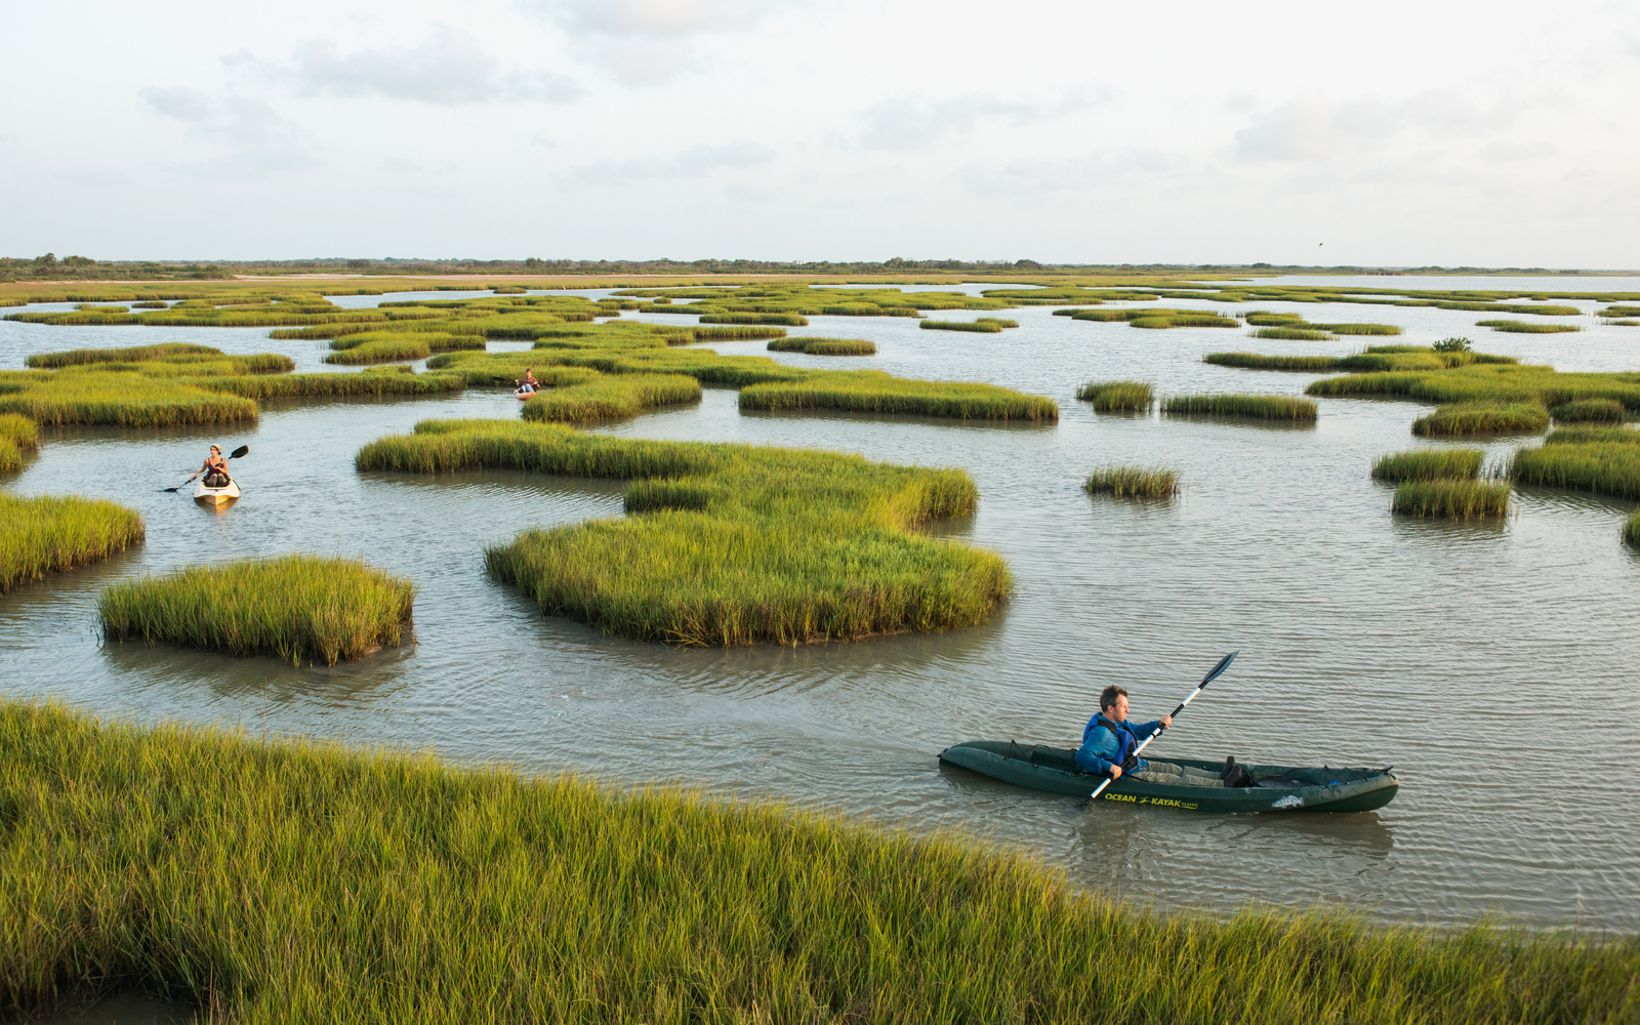 Rich Kostecke, director of science for the Nature Conservancy in Texas, paddles through marsh off the coast of TNC's Powderhorn Ranch, near Port O'Connor, Texas. The ranch is one of the largest remaining tracts of unspoiled coastal prairie in the state of Texas.